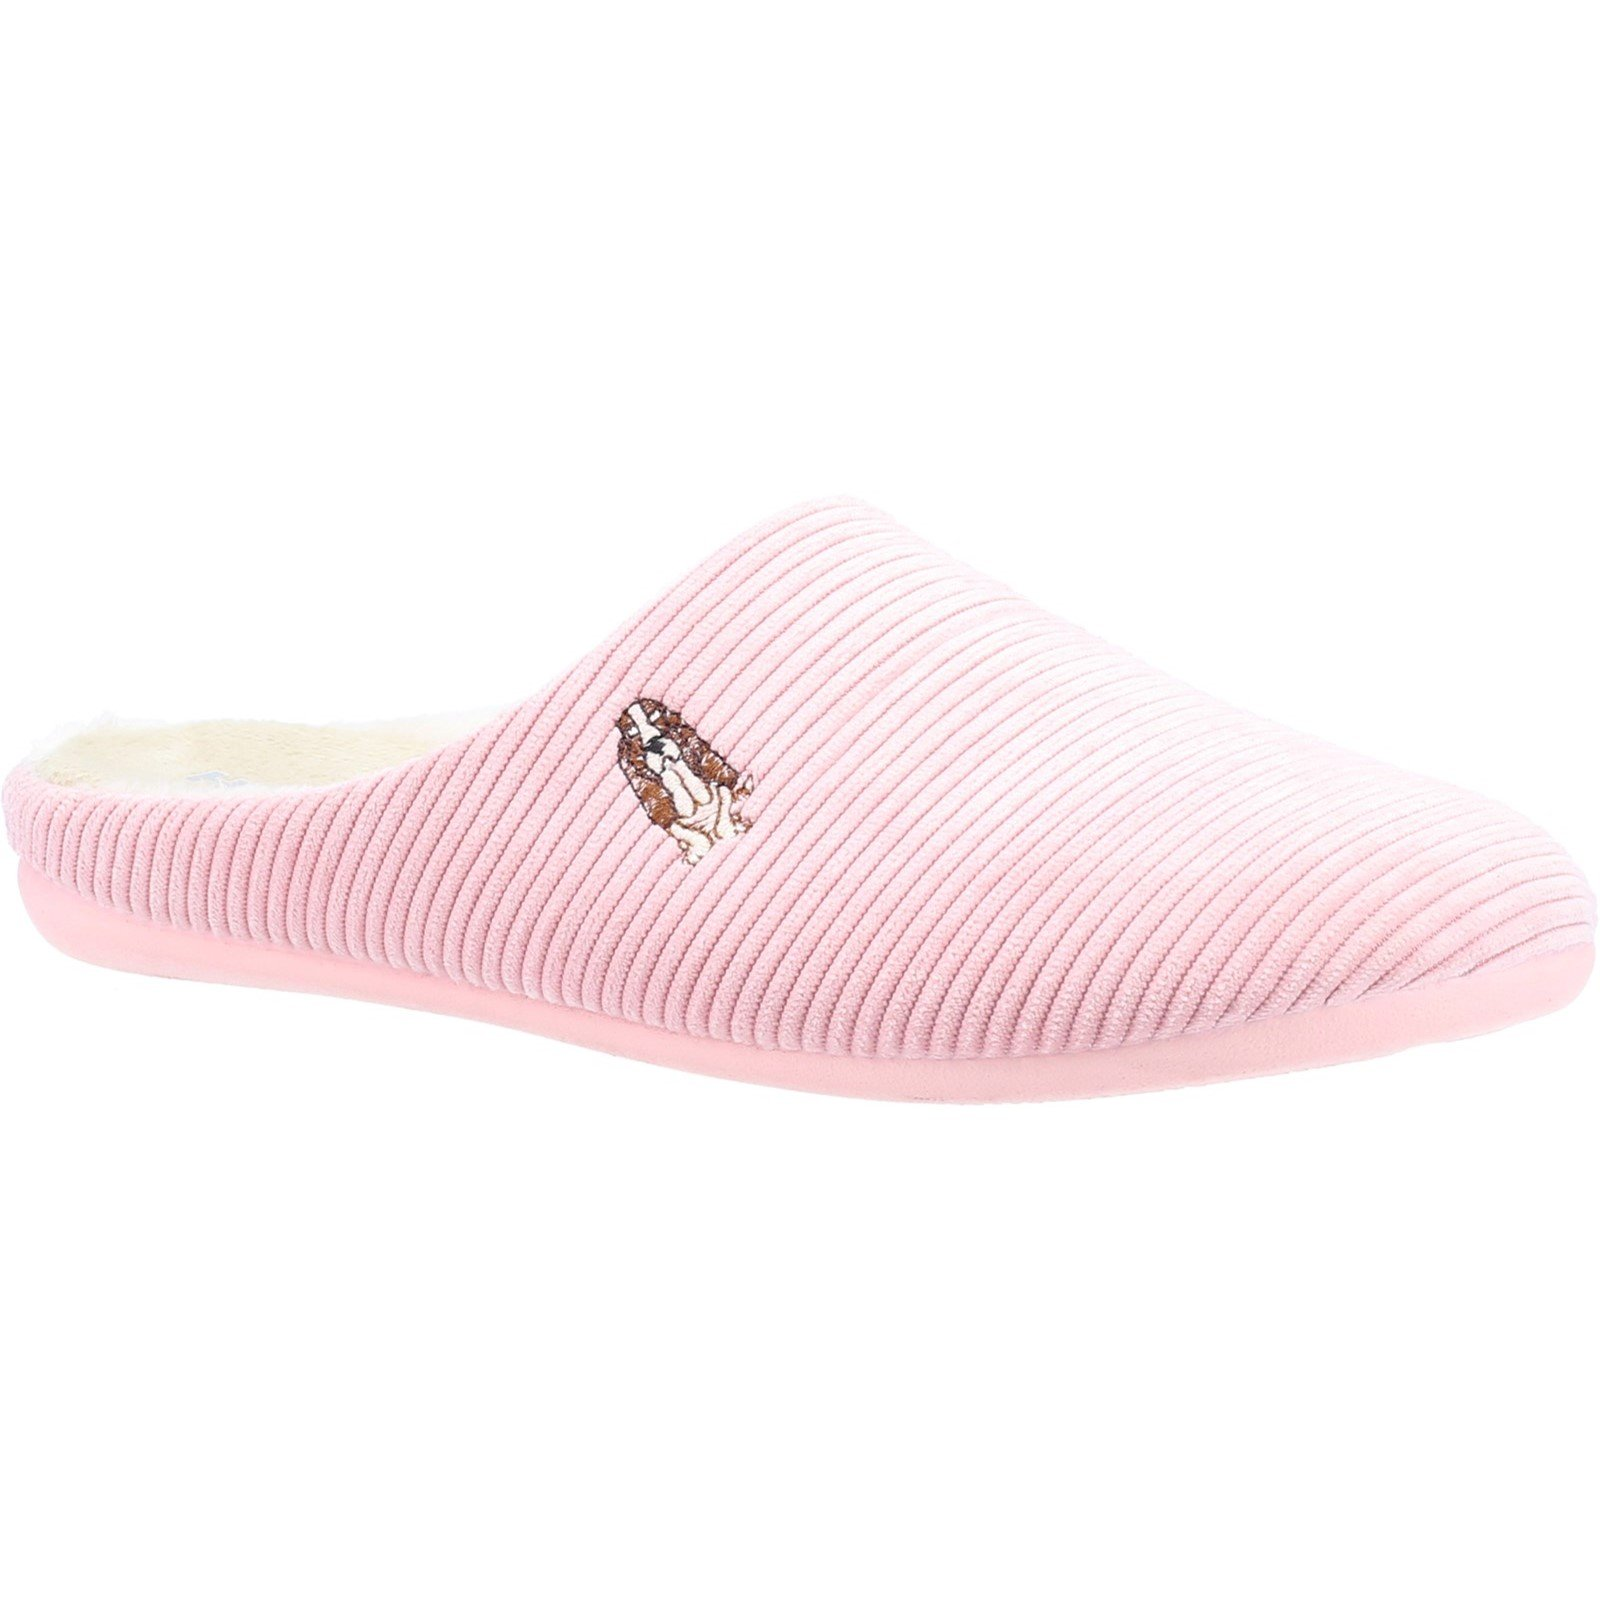 Hush Puppies Women's Raelyn Slipper Various Colours 32854 - Pink 6